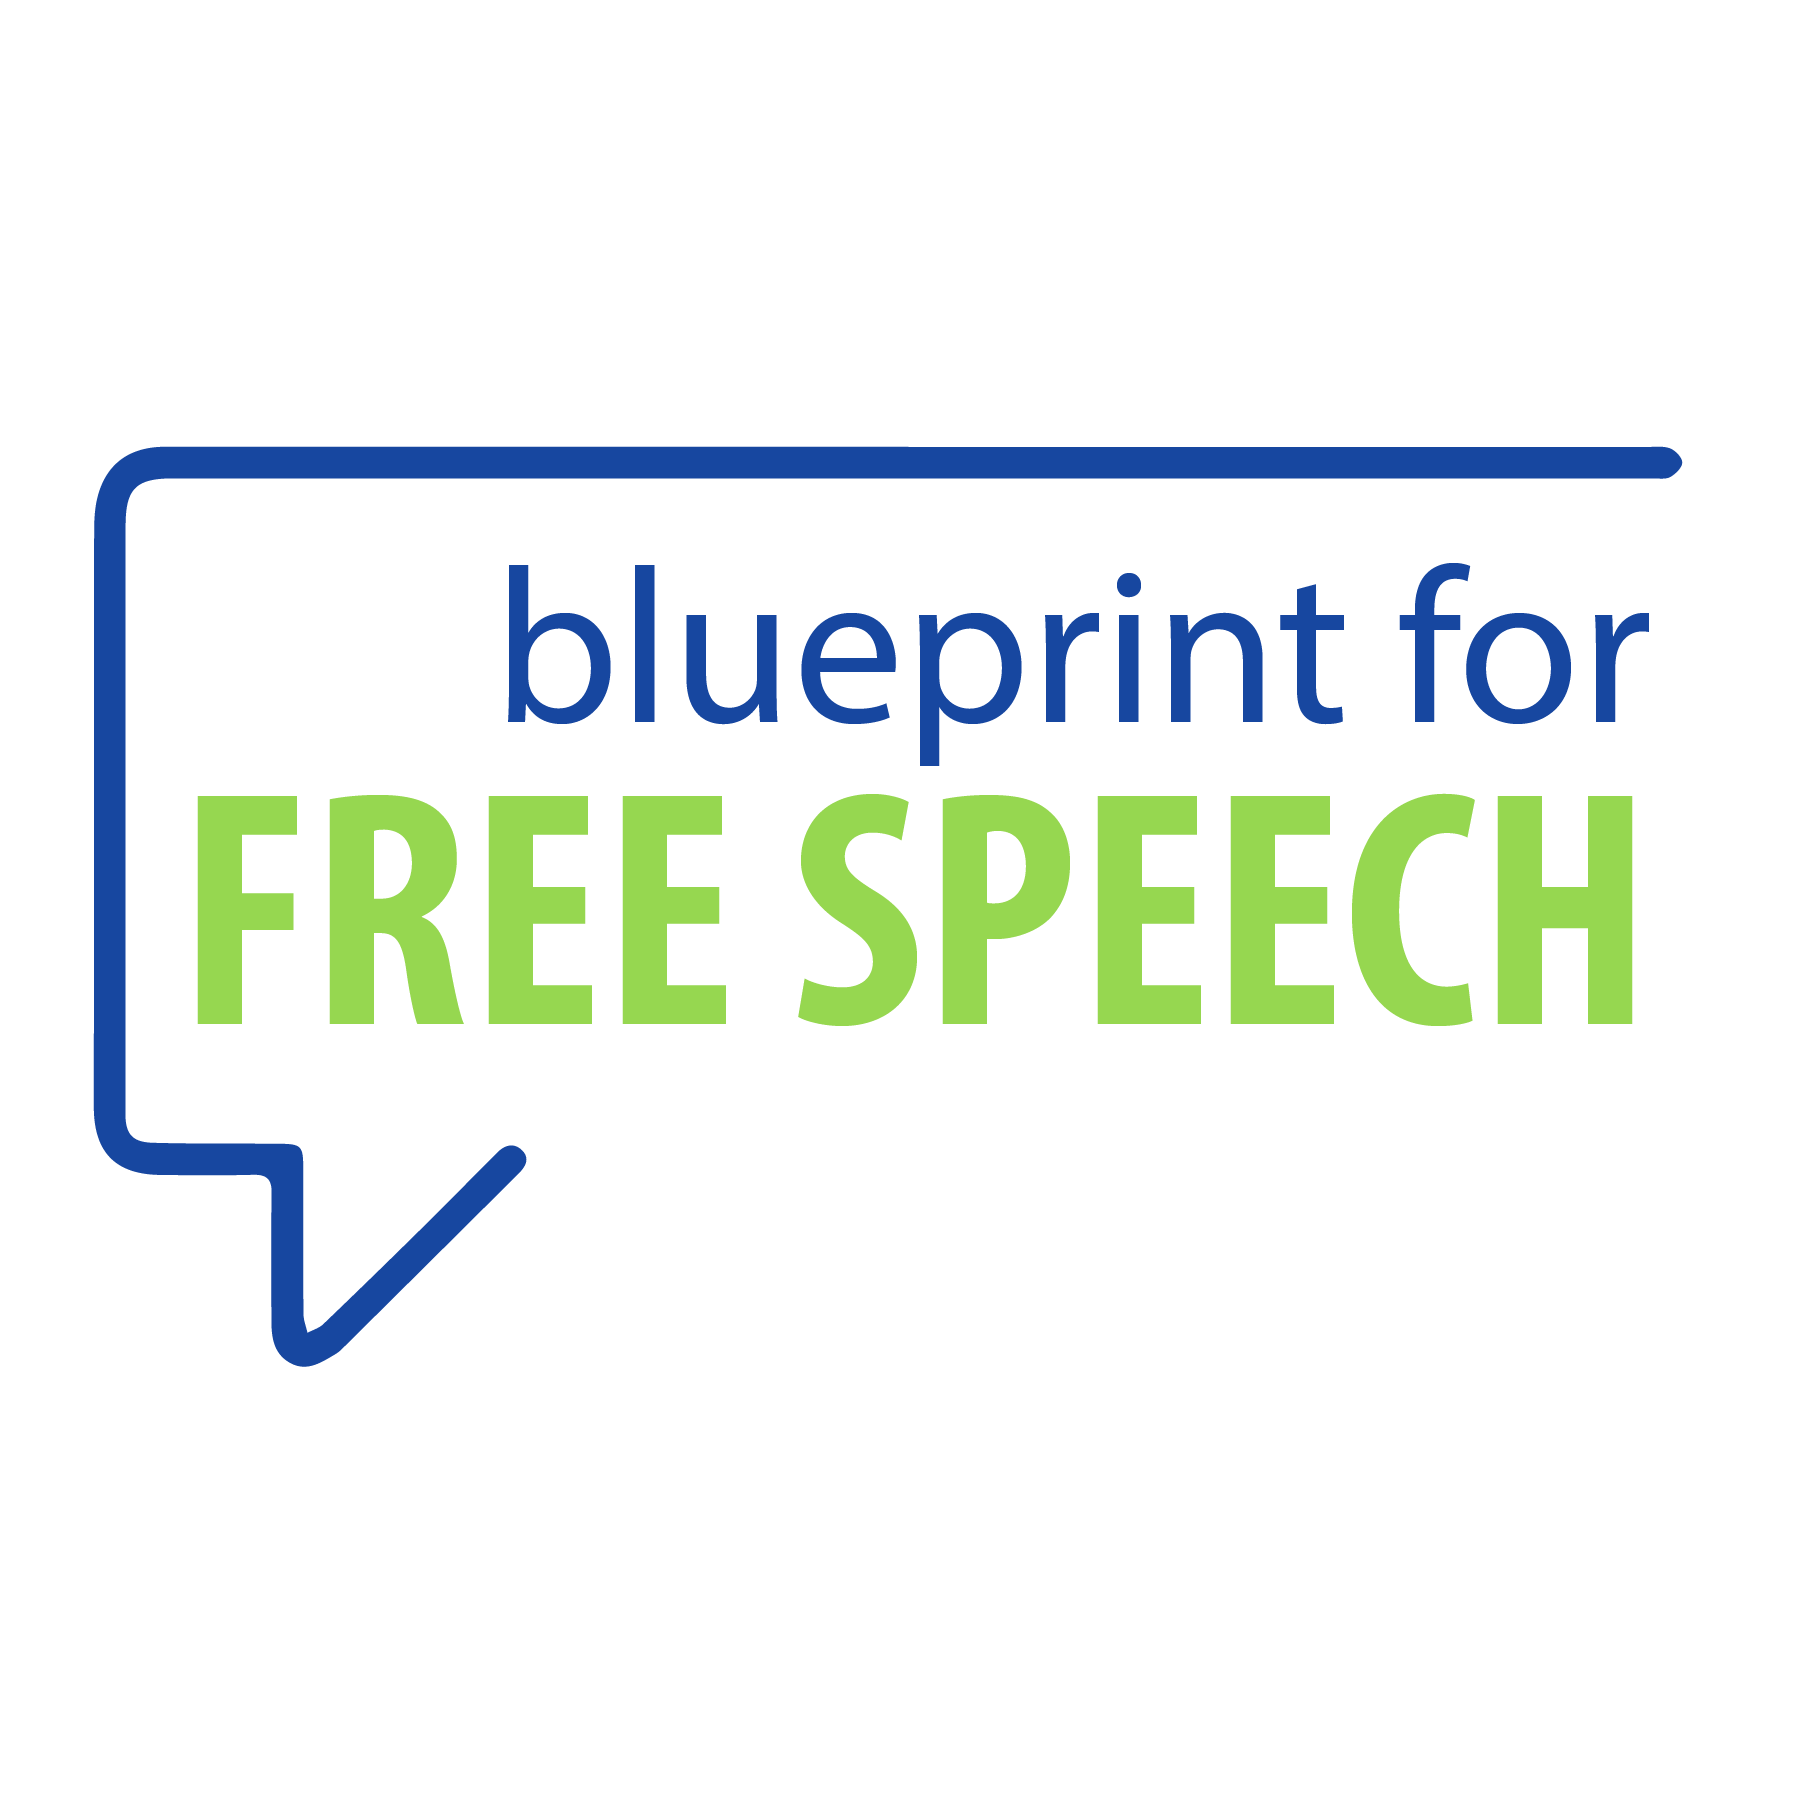 Blueprint for Free Speech